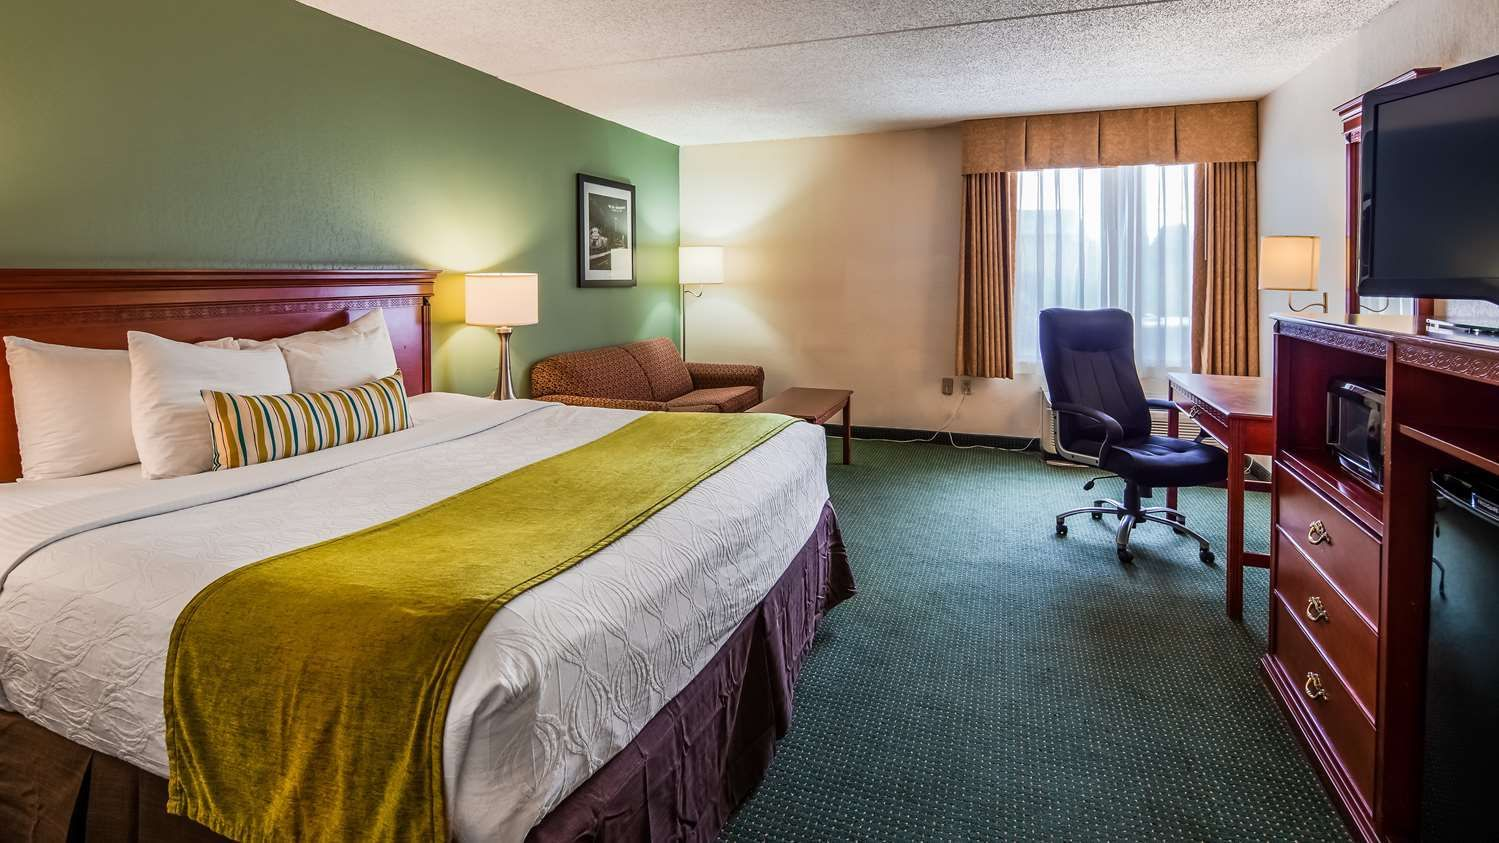 Extended Stay Hotels Knoxville Tn Provides Relaxing And Spacious